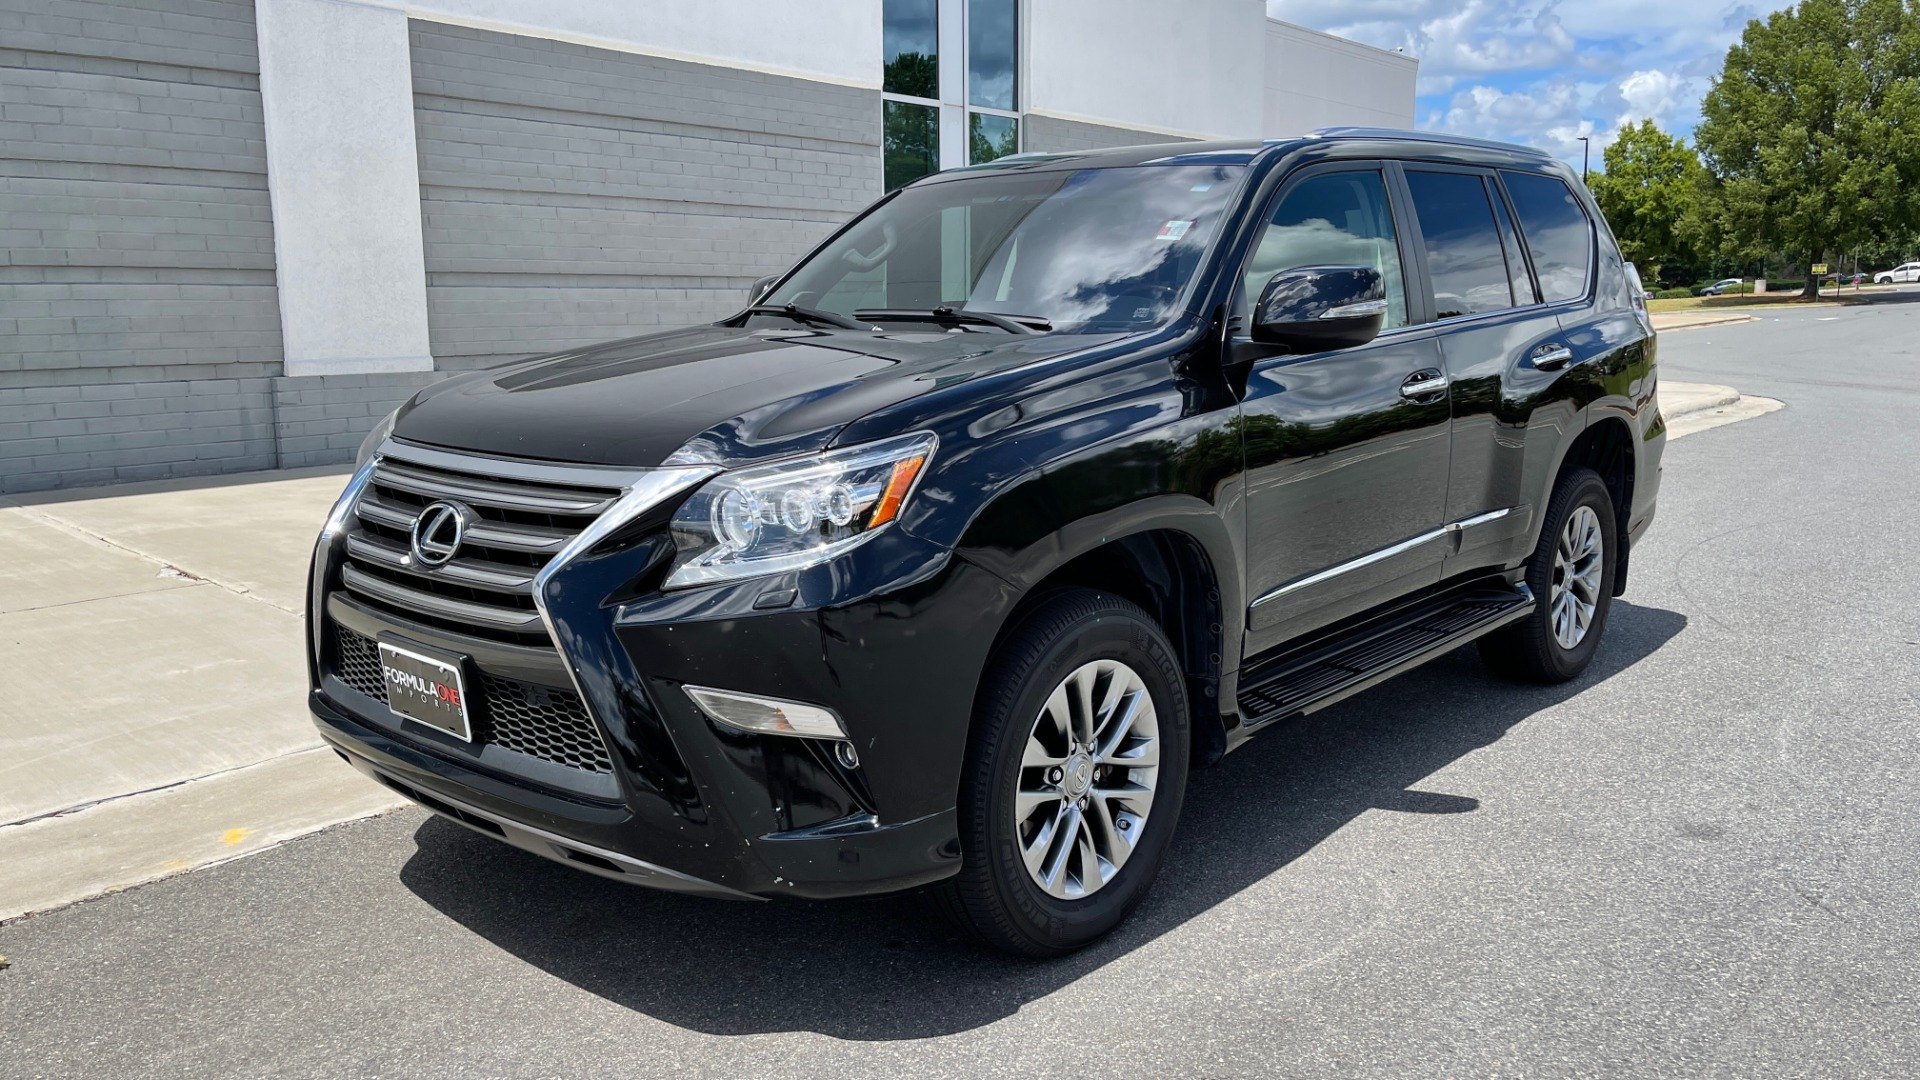 Used 2017 Lexus GX GX 460 LUXURY / AWD / NAV / SUNROOF / MARK LEV SND / REARVIEW for sale $37,995 at Formula Imports in Charlotte NC 28227 2